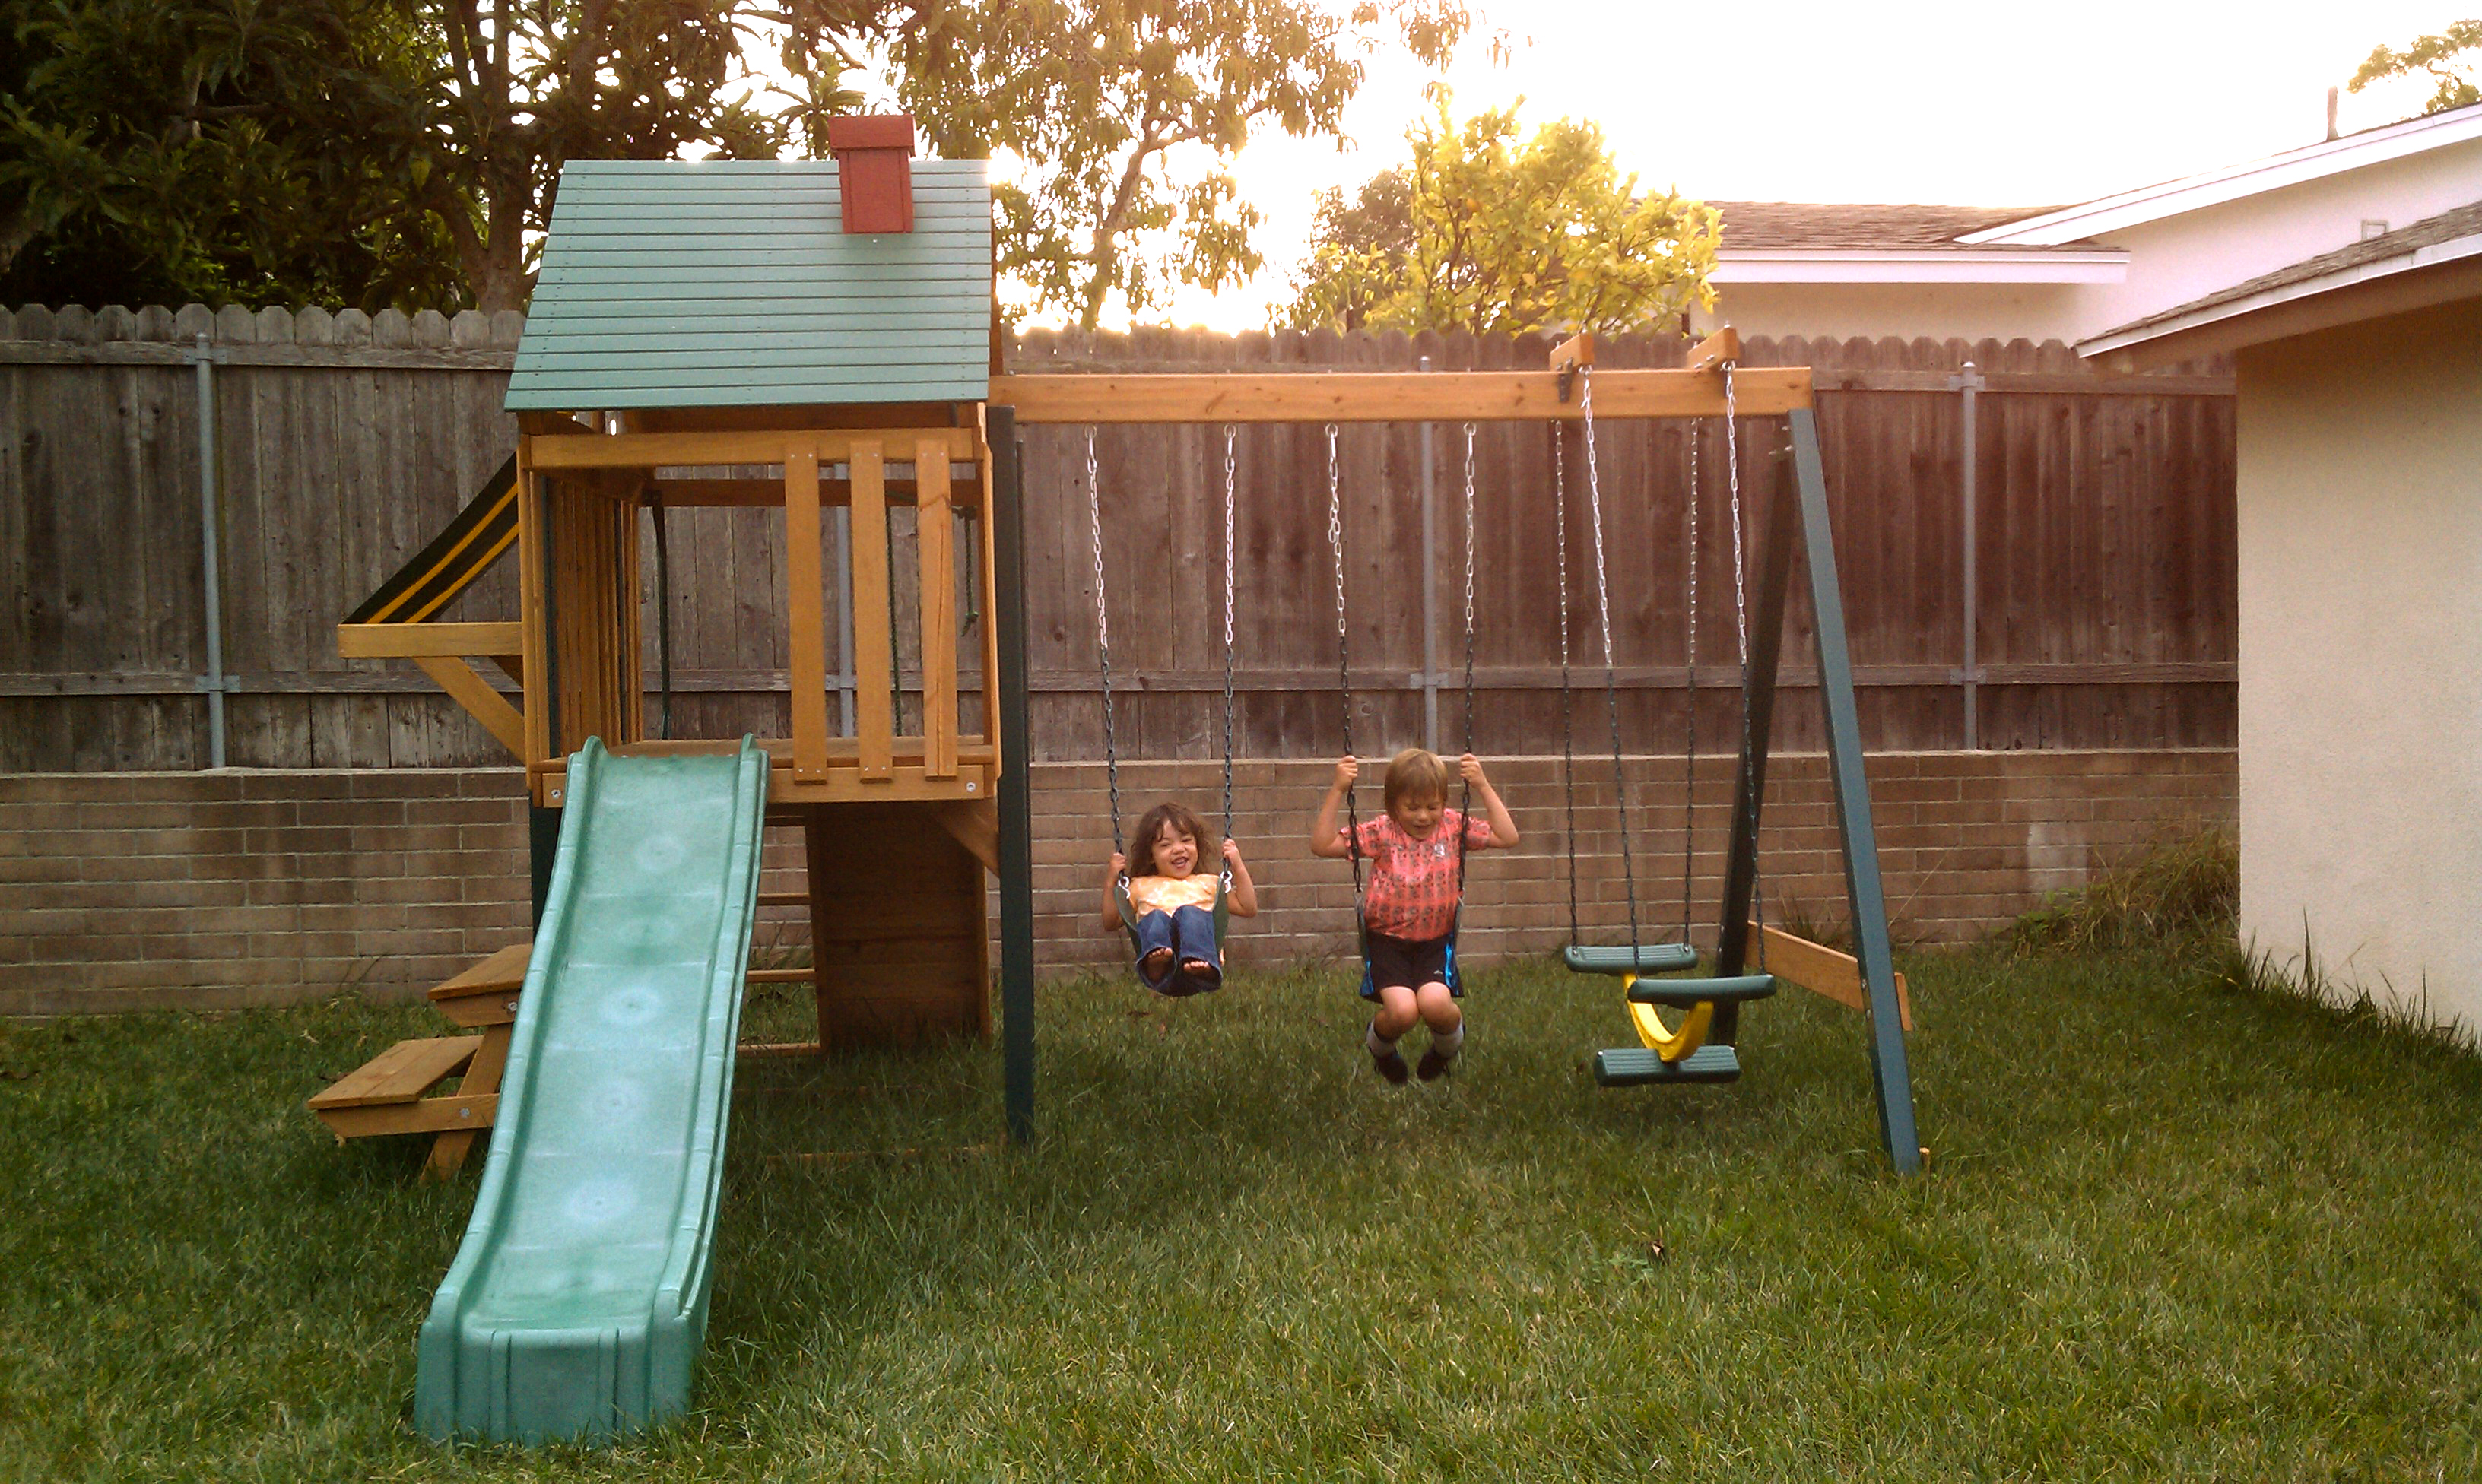 Backyard Playground Diy : It?s over It?s done We?re happy with the results Let?s just